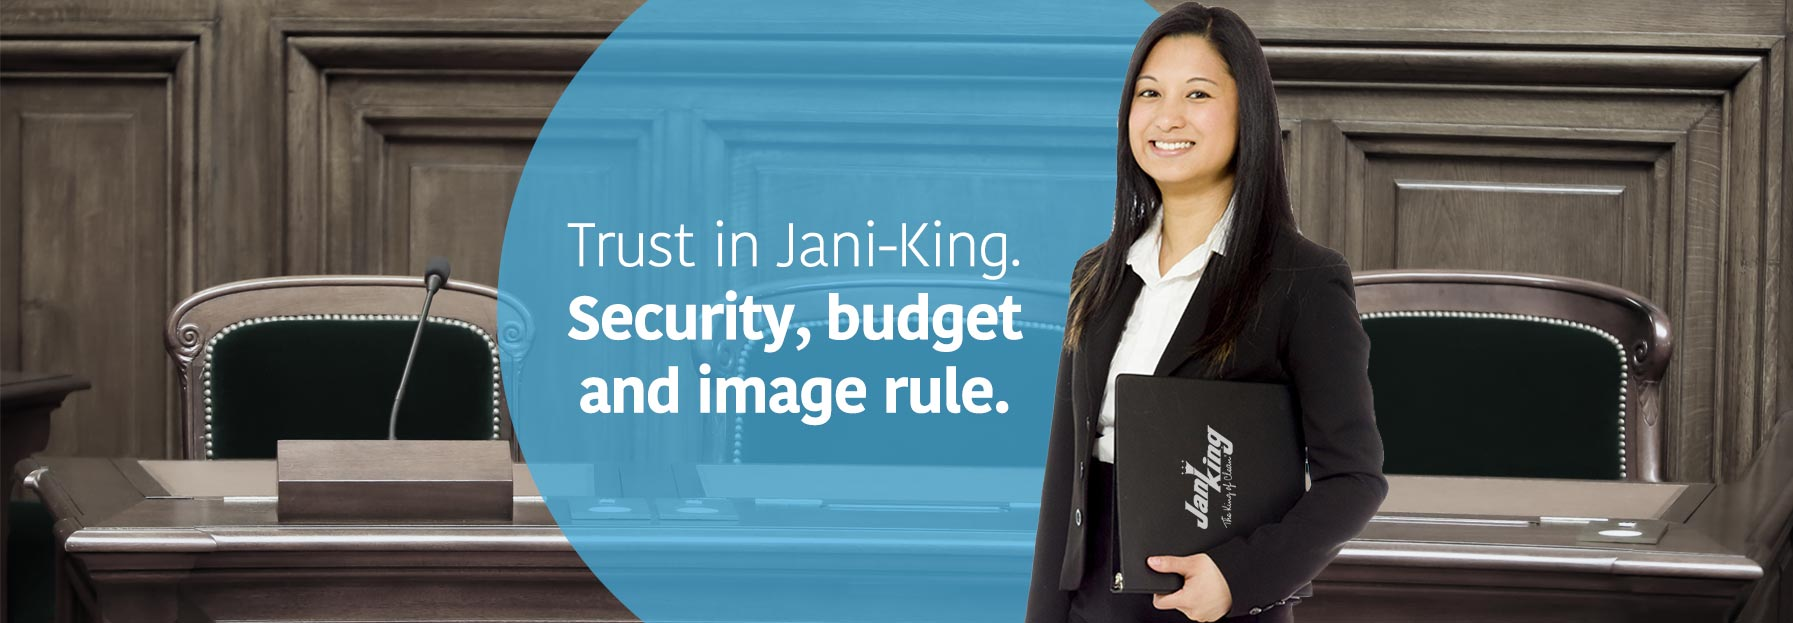 Jani-King Government Building Cleaning Services